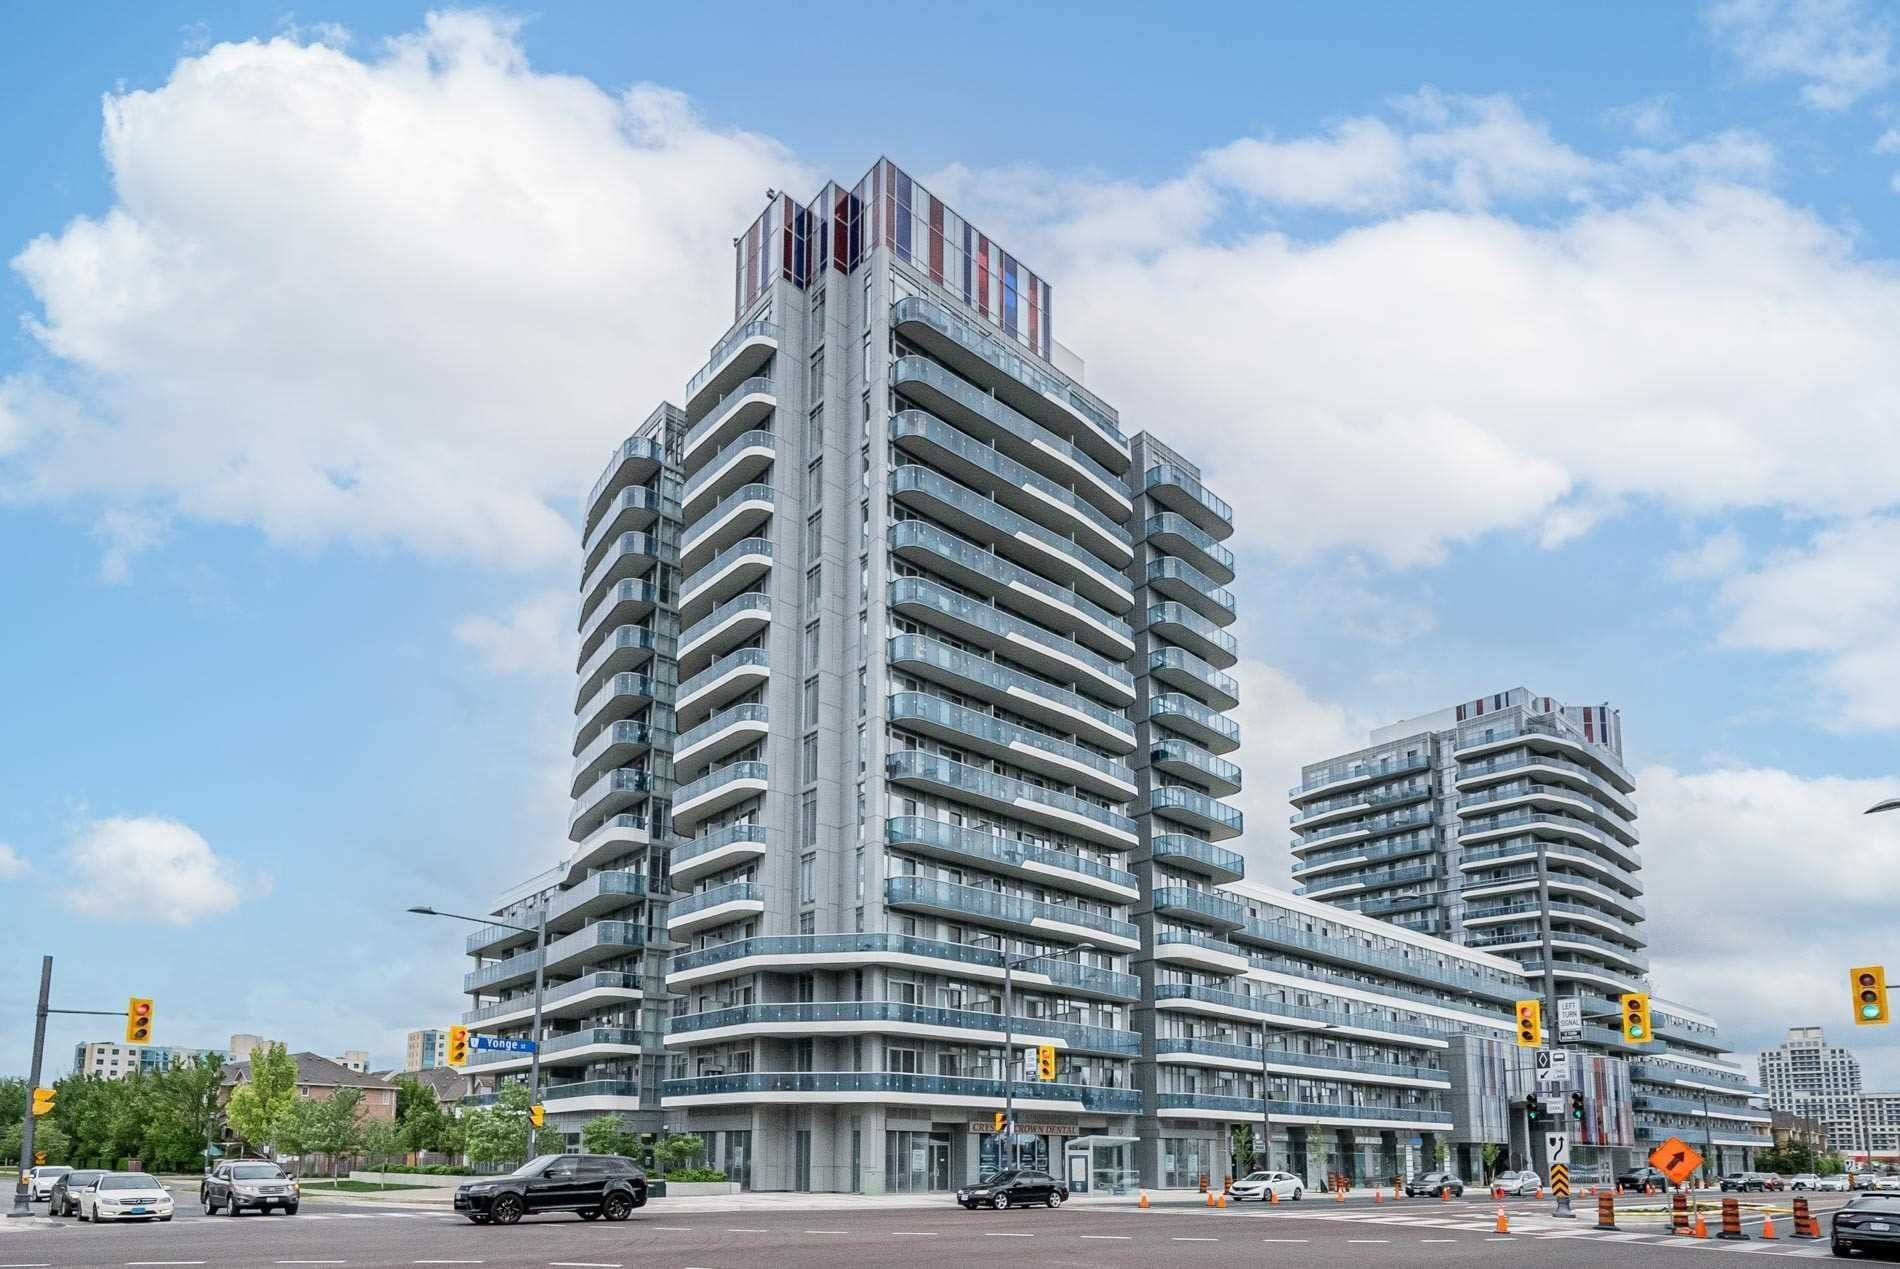 9471 Yonge St, unit 810 for sale in Toronto - image #2